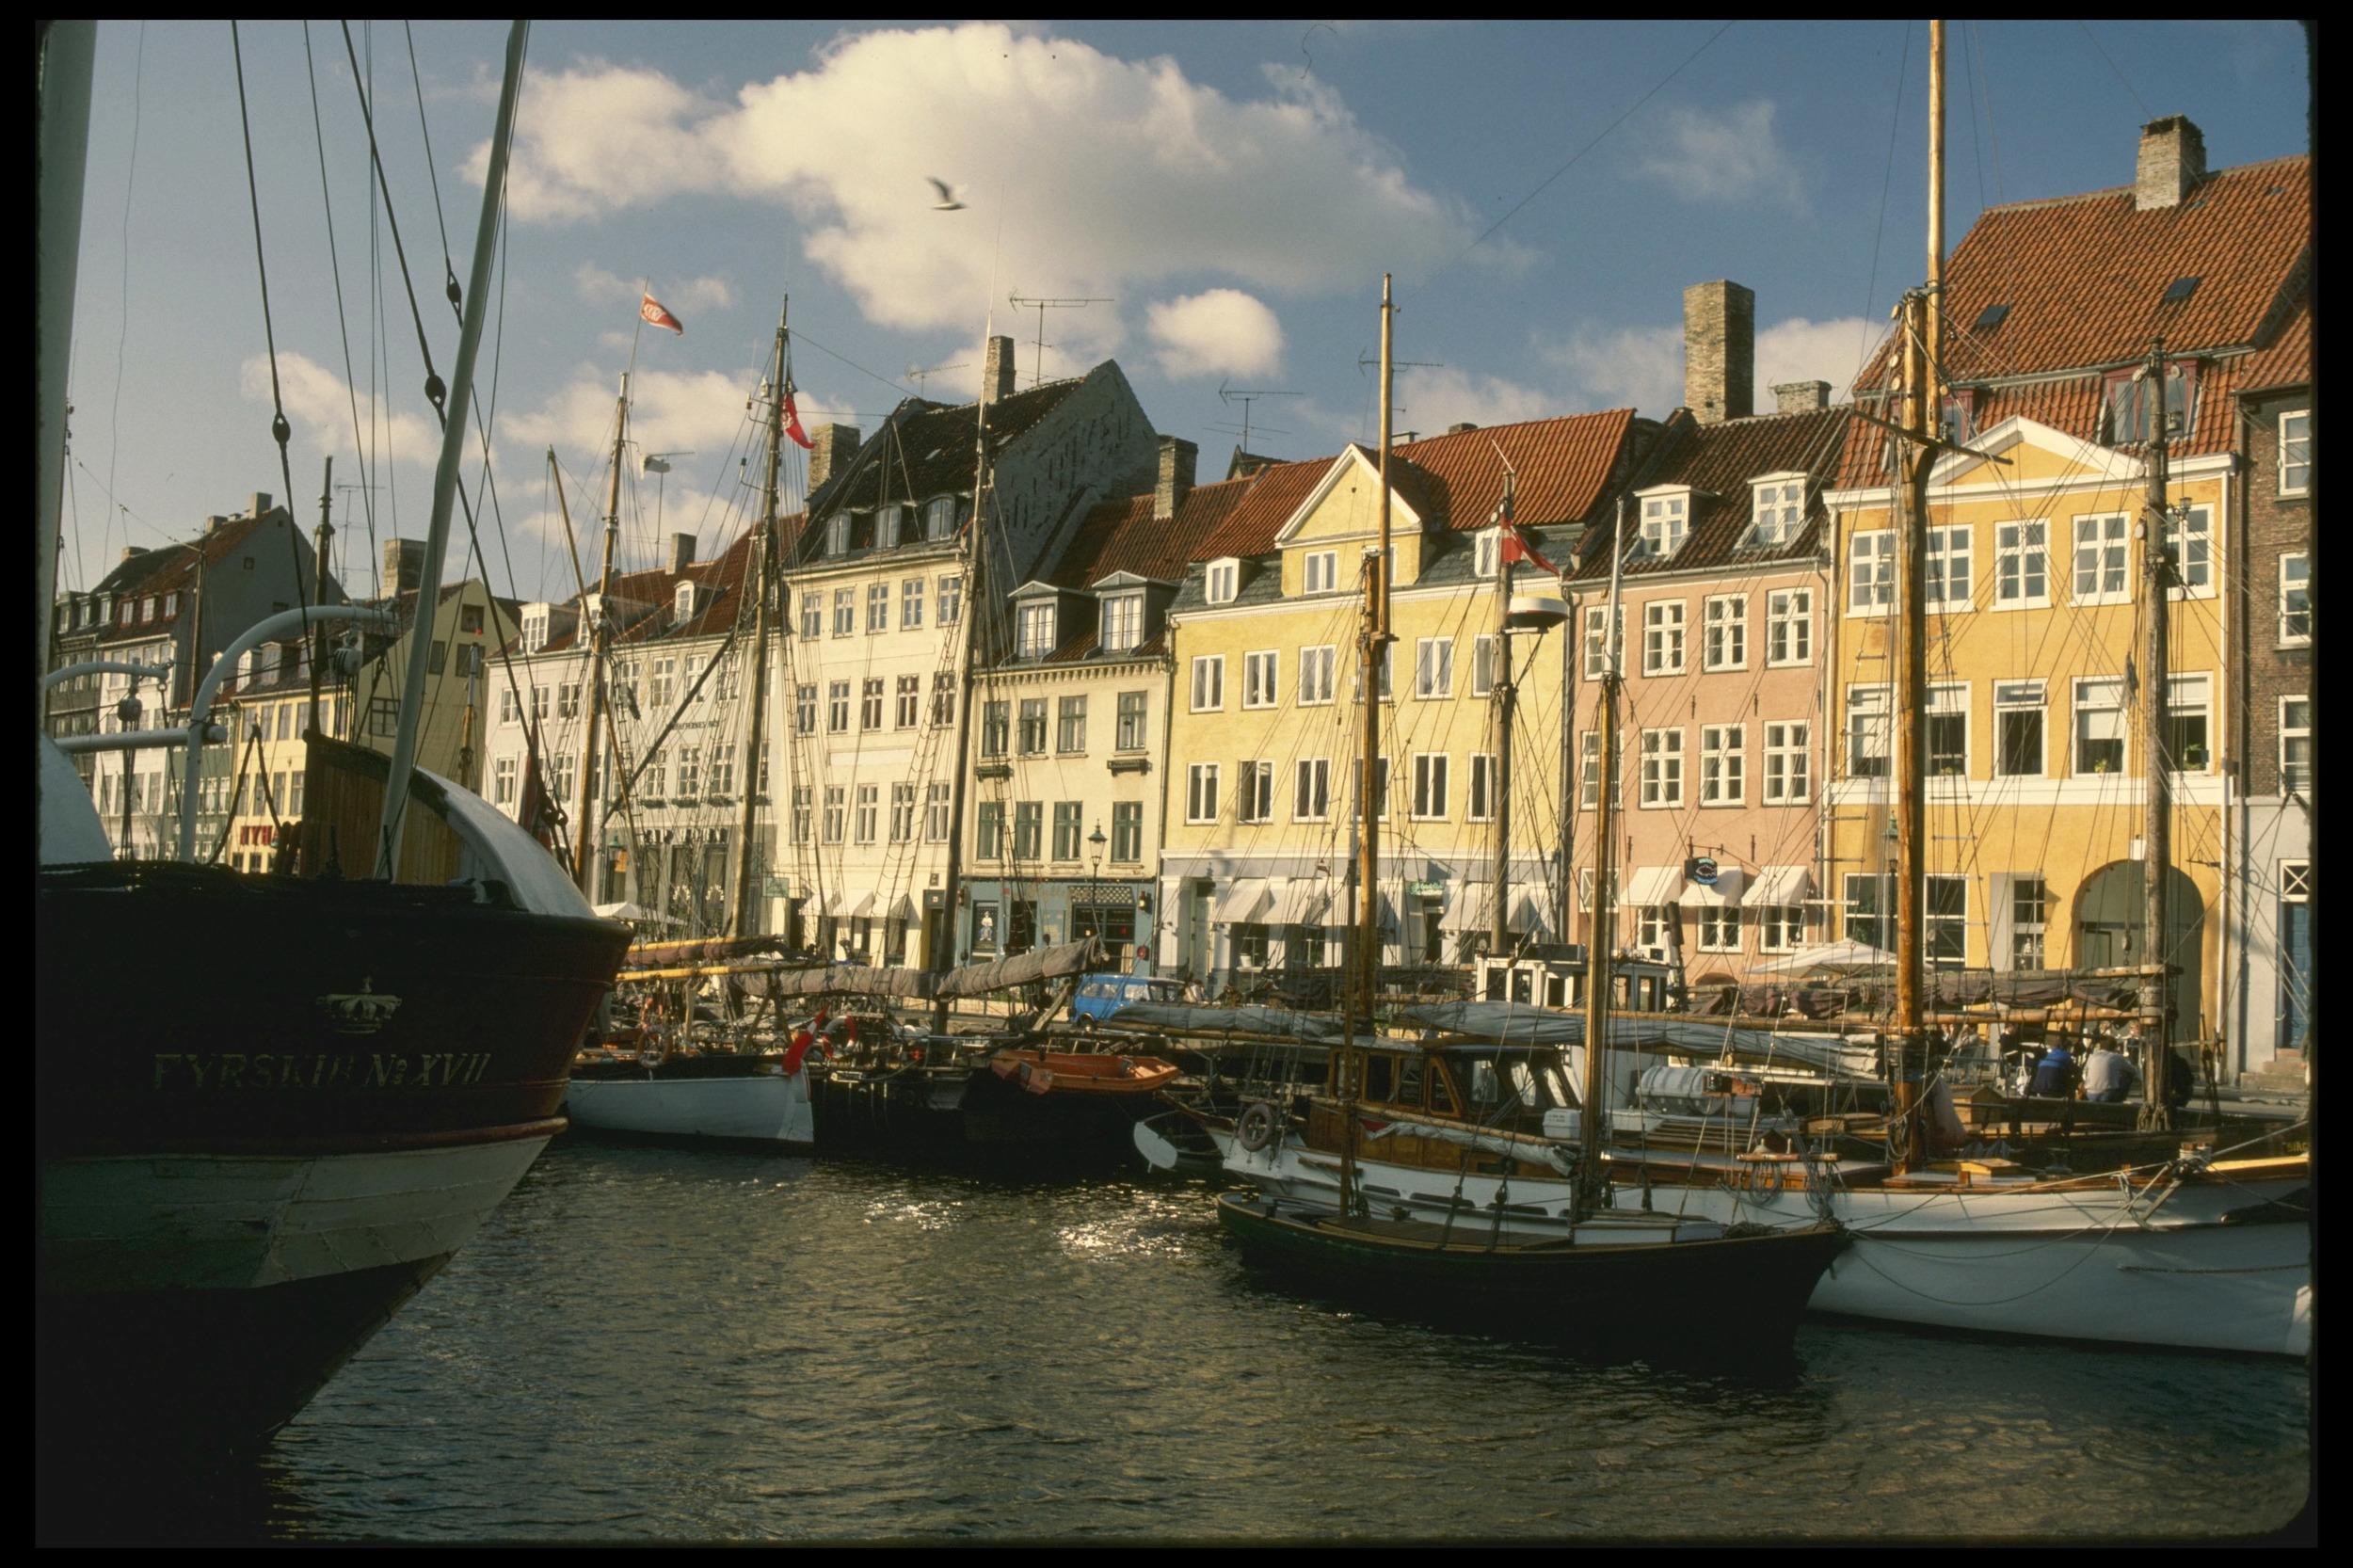 """<p>Denmark's system includes a basic state pension, means-tested state top-ups, a fully funded defined contribution scheme and mandatory occupational schemes.</p>  <p>The researchers said it was """"A first class and robust retirement income system"""". It scored 82.4 out of 100, with high marks across the board.</p>"""